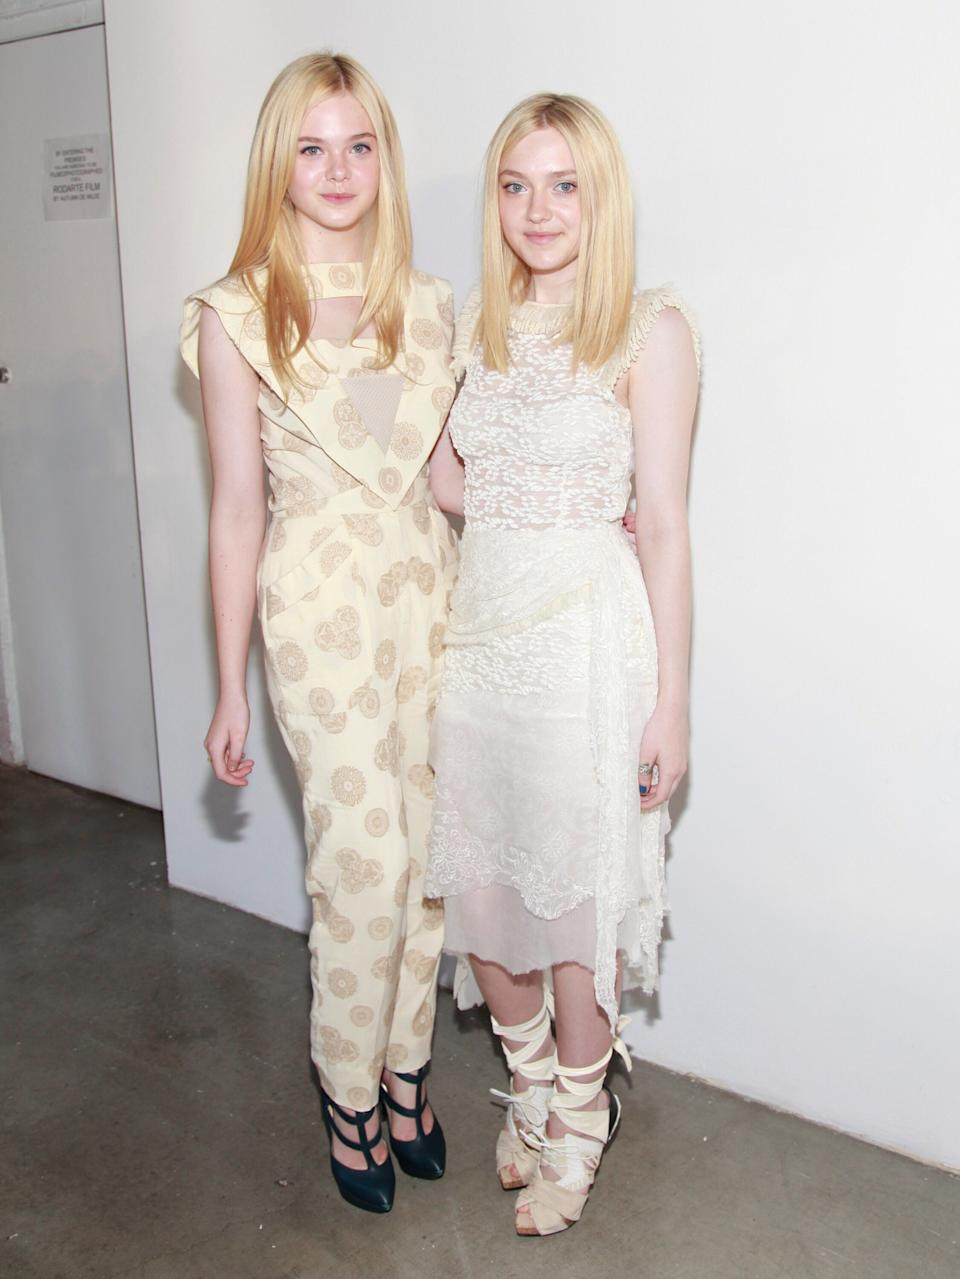 The Fanning sisters at the Rodarte Spring 2012 fashion show at Pace Gallery during Mercedes-Benz Fashion Week in New York City.